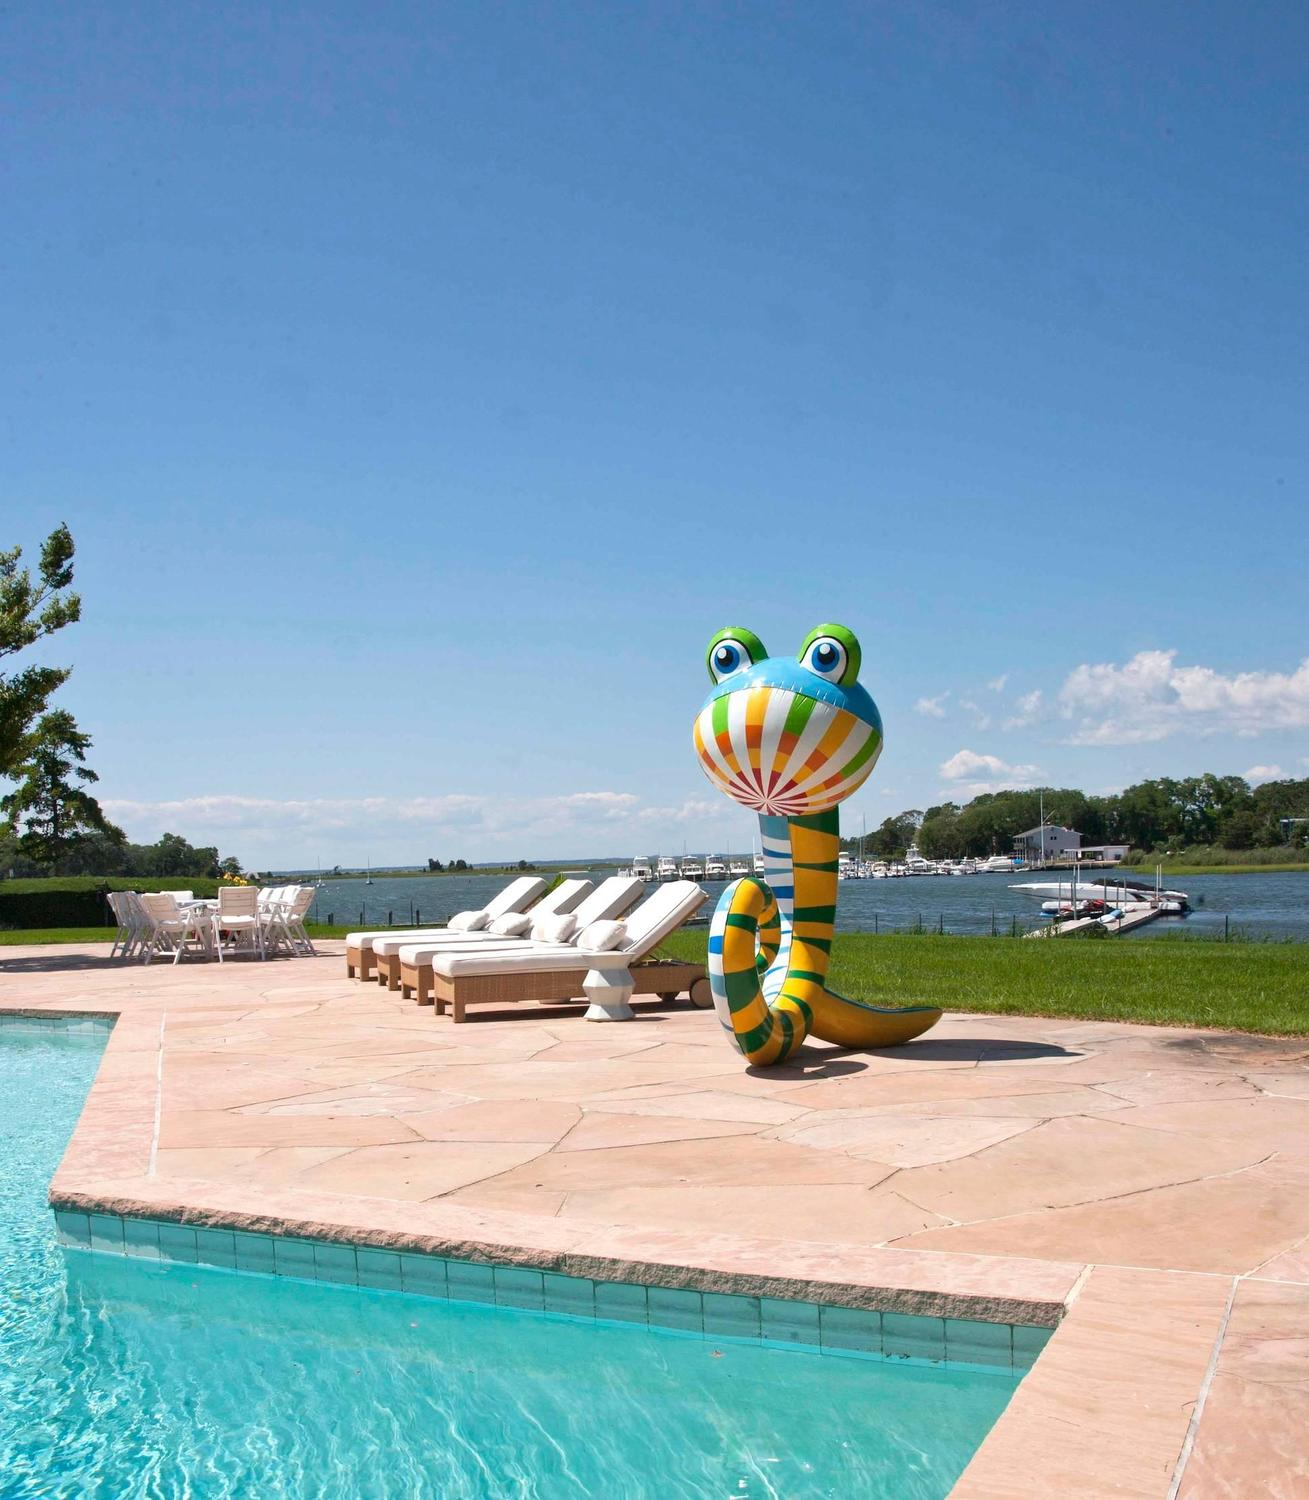 Phillip maberry outdoor pool toy for sale at 1stdibs for Outdoor pool sculptures